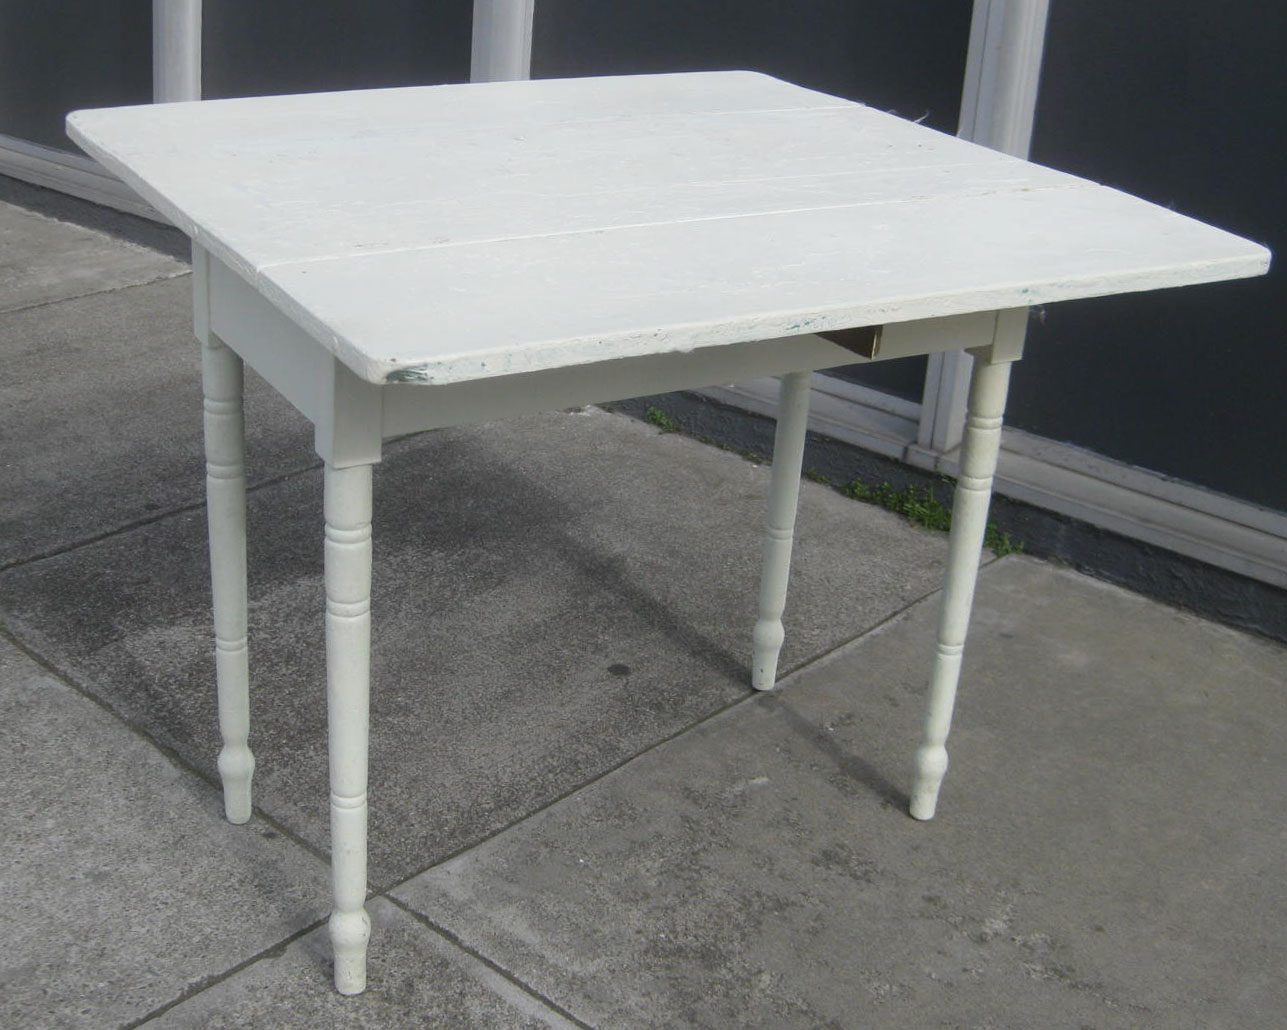 Uhuru furniture collectibles sold sweet drop leaf kitchen table 60 - Drop leaf kitchen table ...